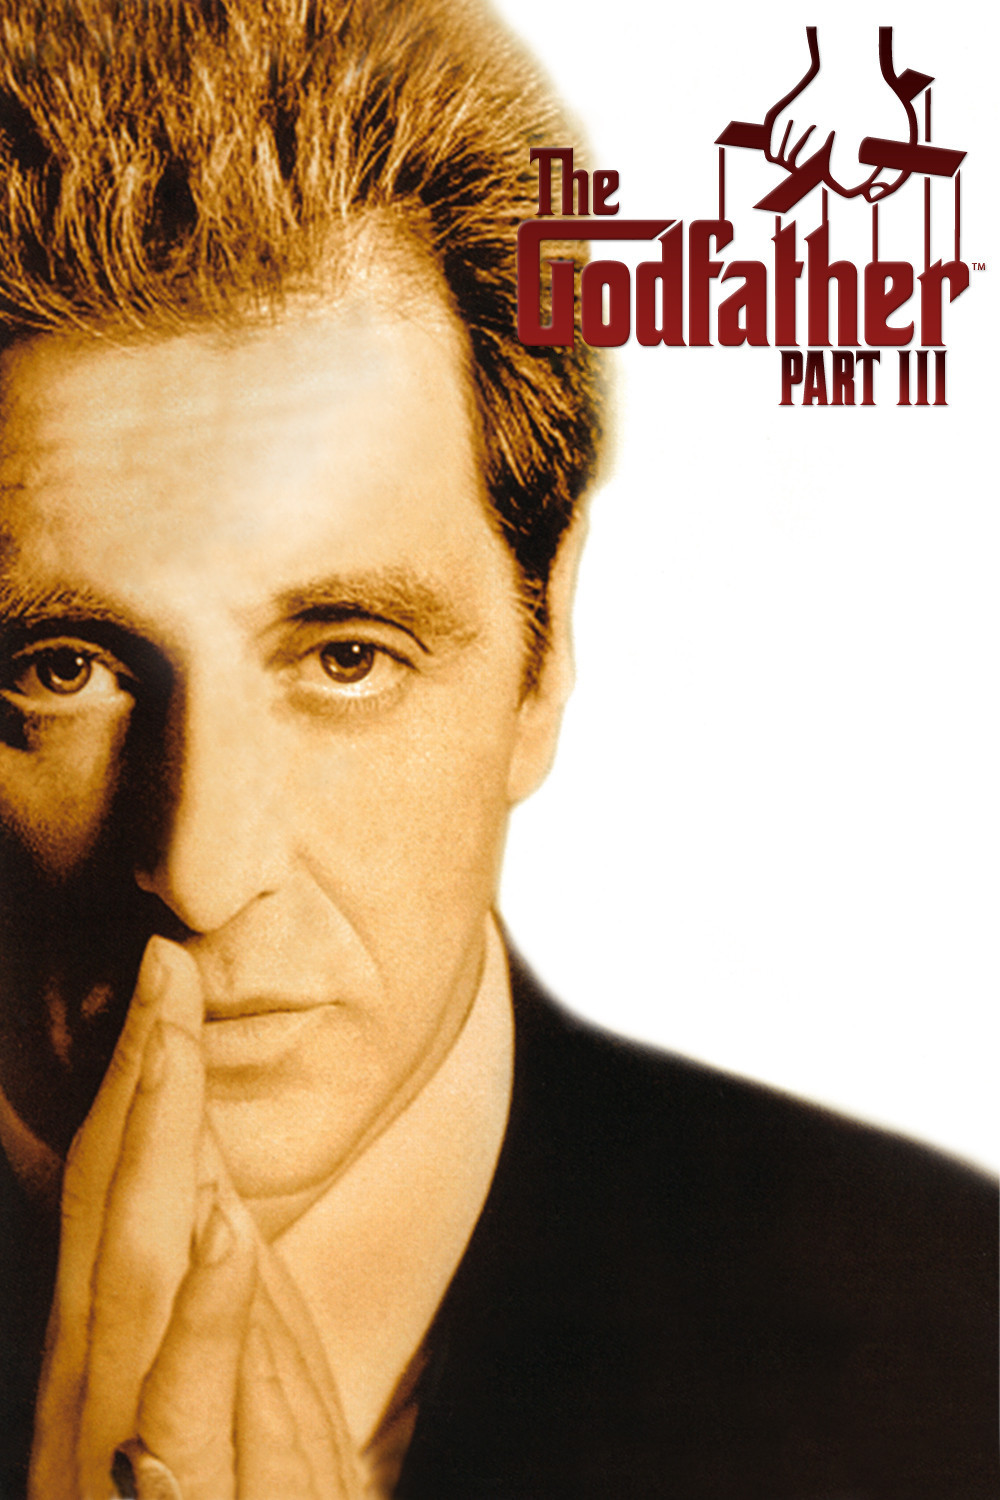 My Movies: The Godfather: Part III (1990)